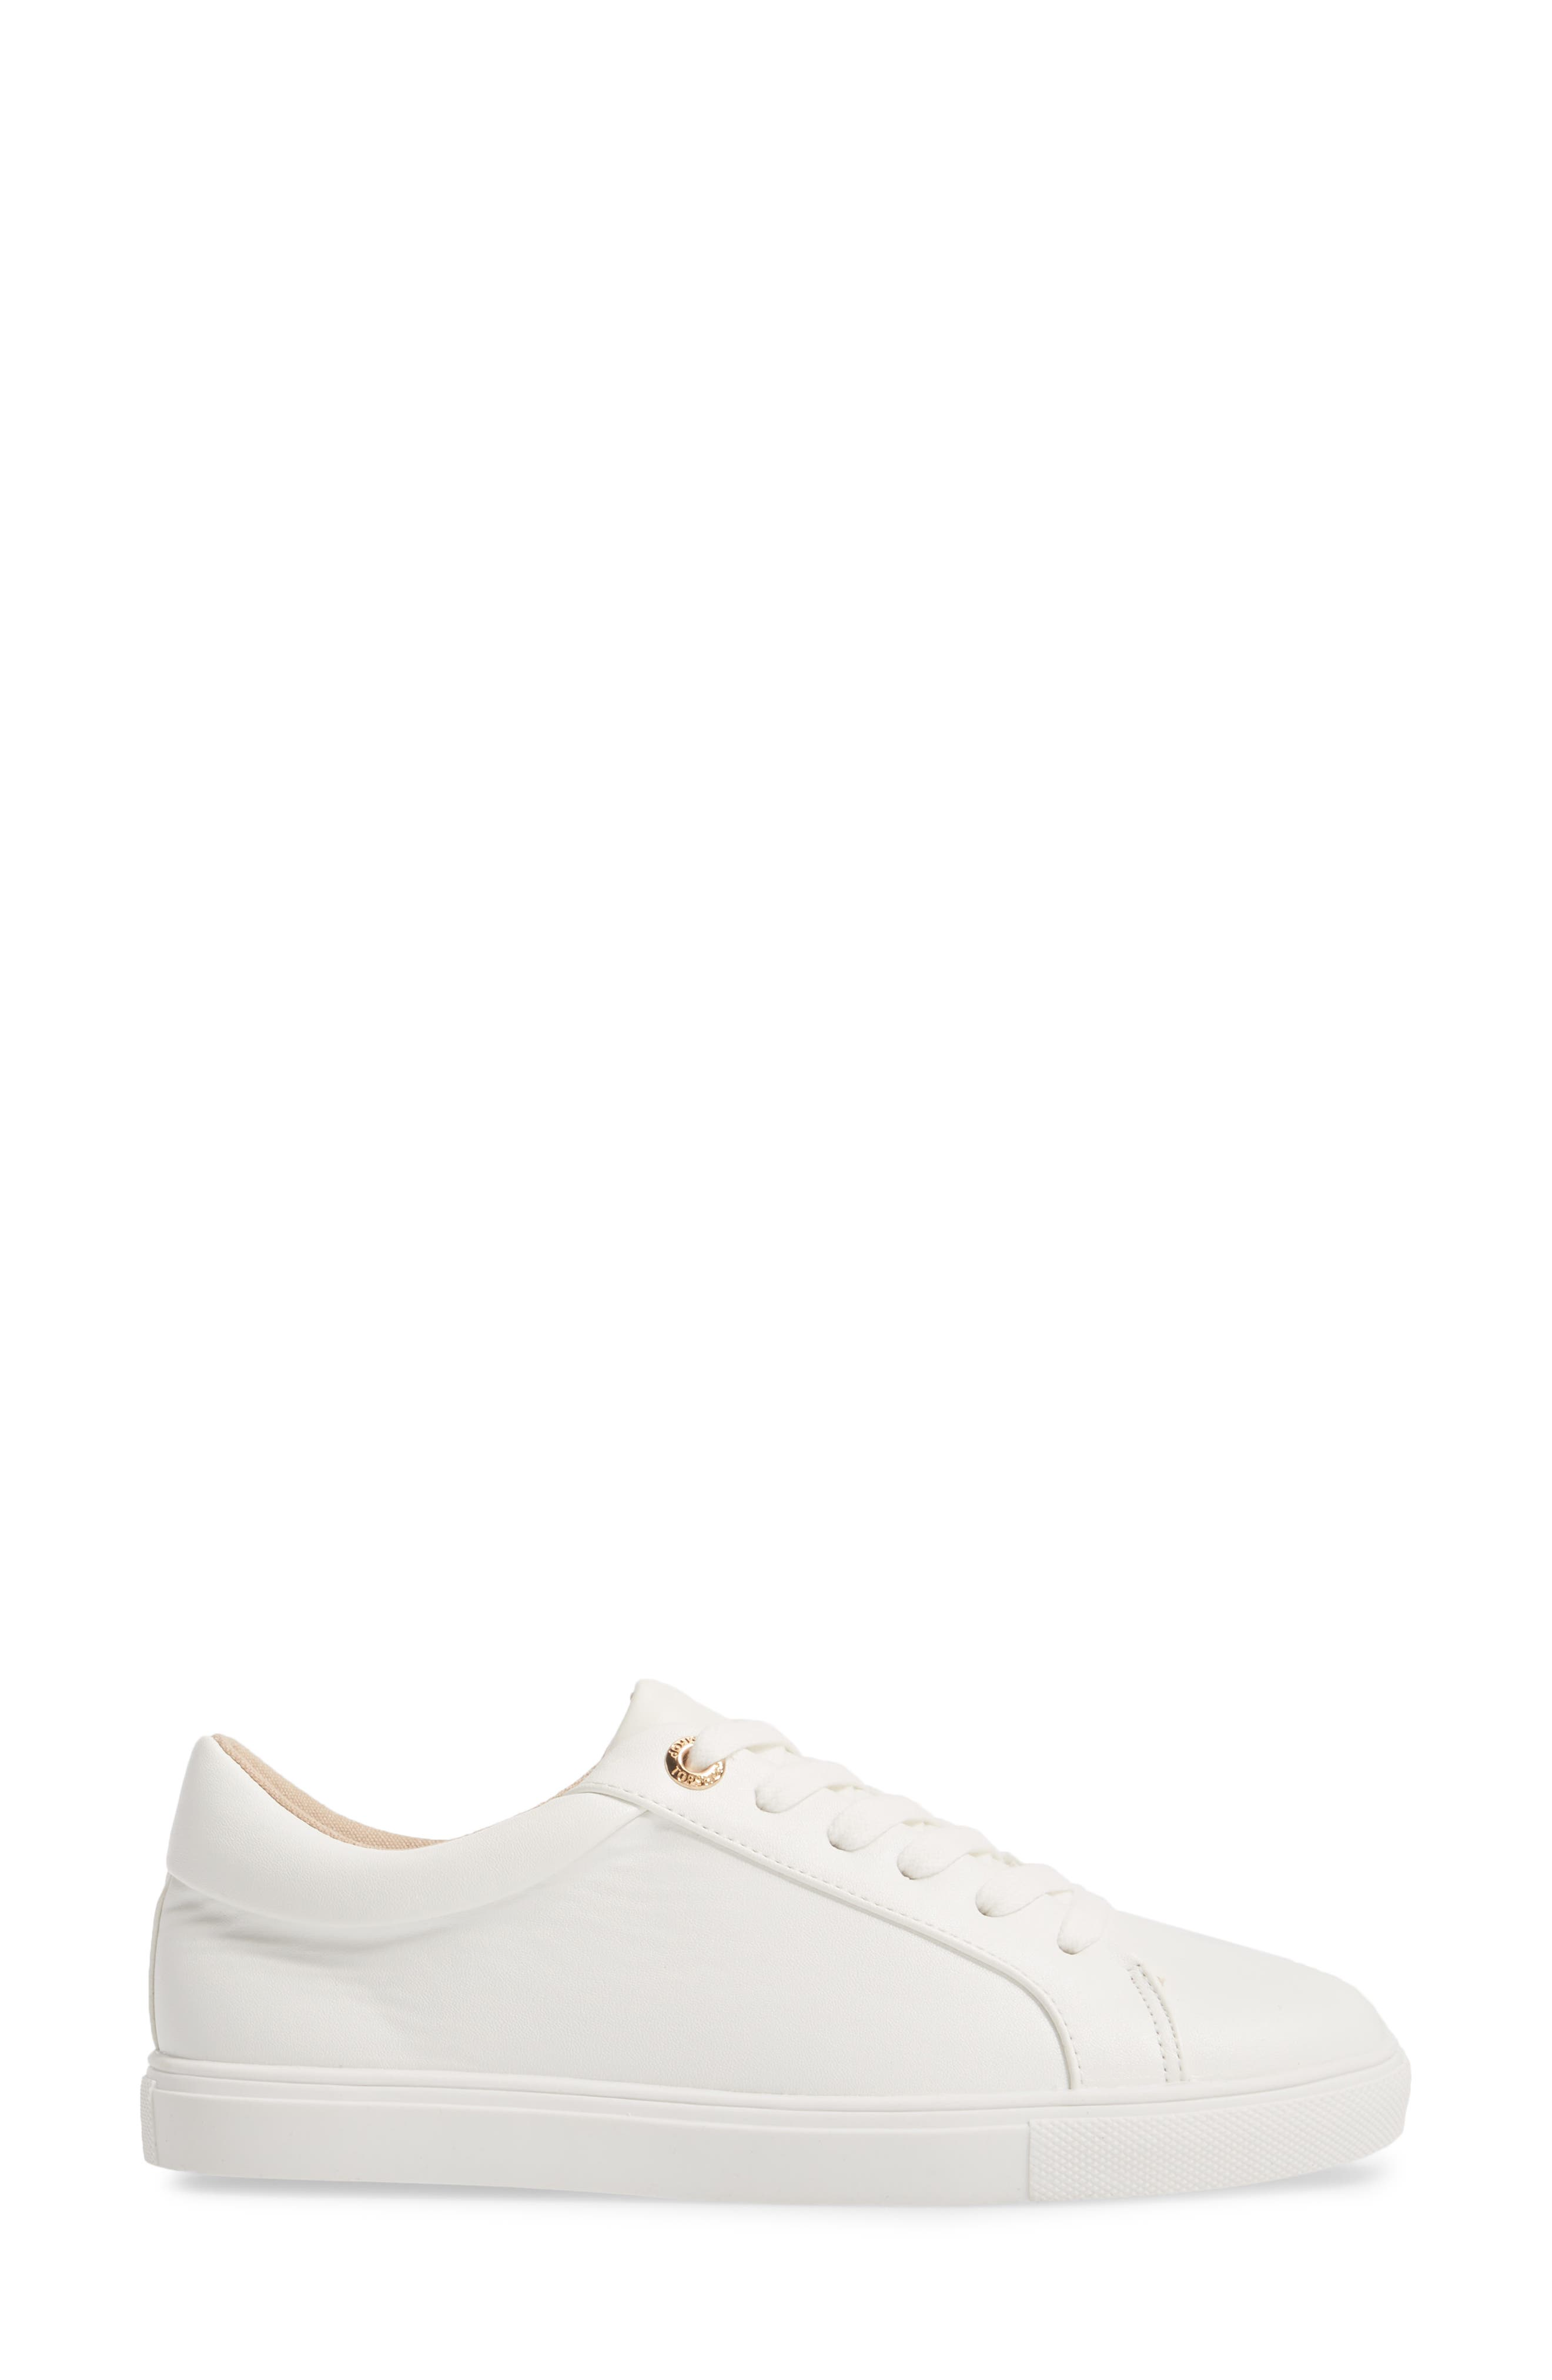 Cookie Low Top Sneaker,                             Alternate thumbnail 3, color,                             White